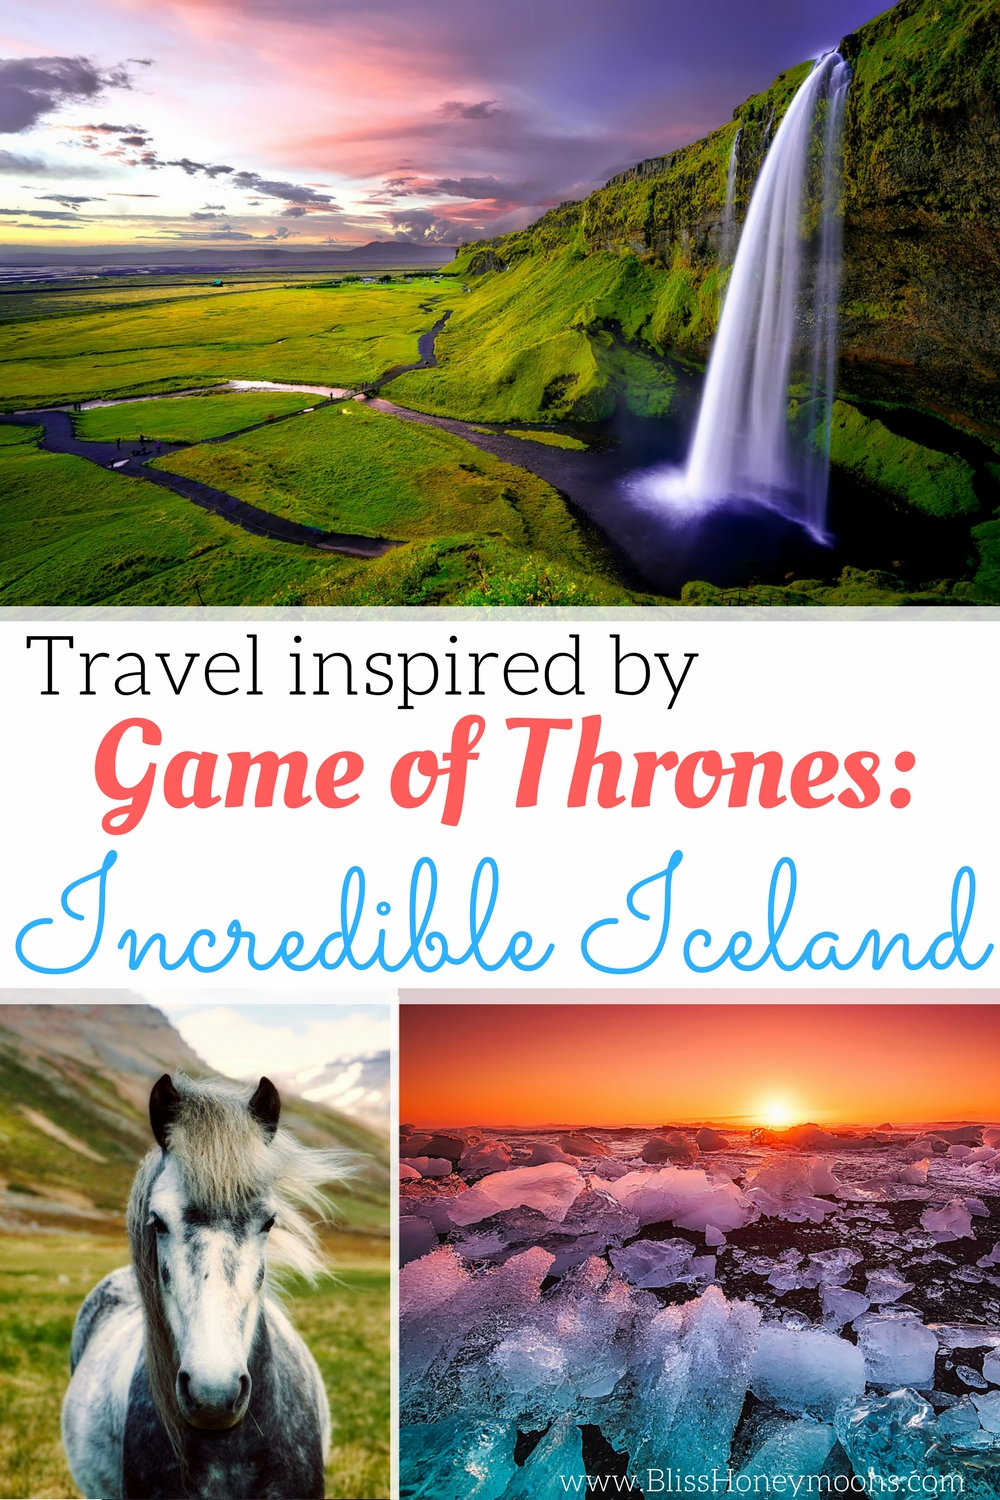 Game of Thrones Iceland travel, Iceland romantic trip, romantic trip ideas, Iceland honeymoon, Iceland anniversary trip, Iceland travel tips, unique romantic travel ideas, Bliss Honeymoons review, best destination wedding and honeymoon travel agent, Thingvellir National Park review, Thjorsárdalur Valley review, Ruins of Dimmuborgir review, Lake Mývatn review